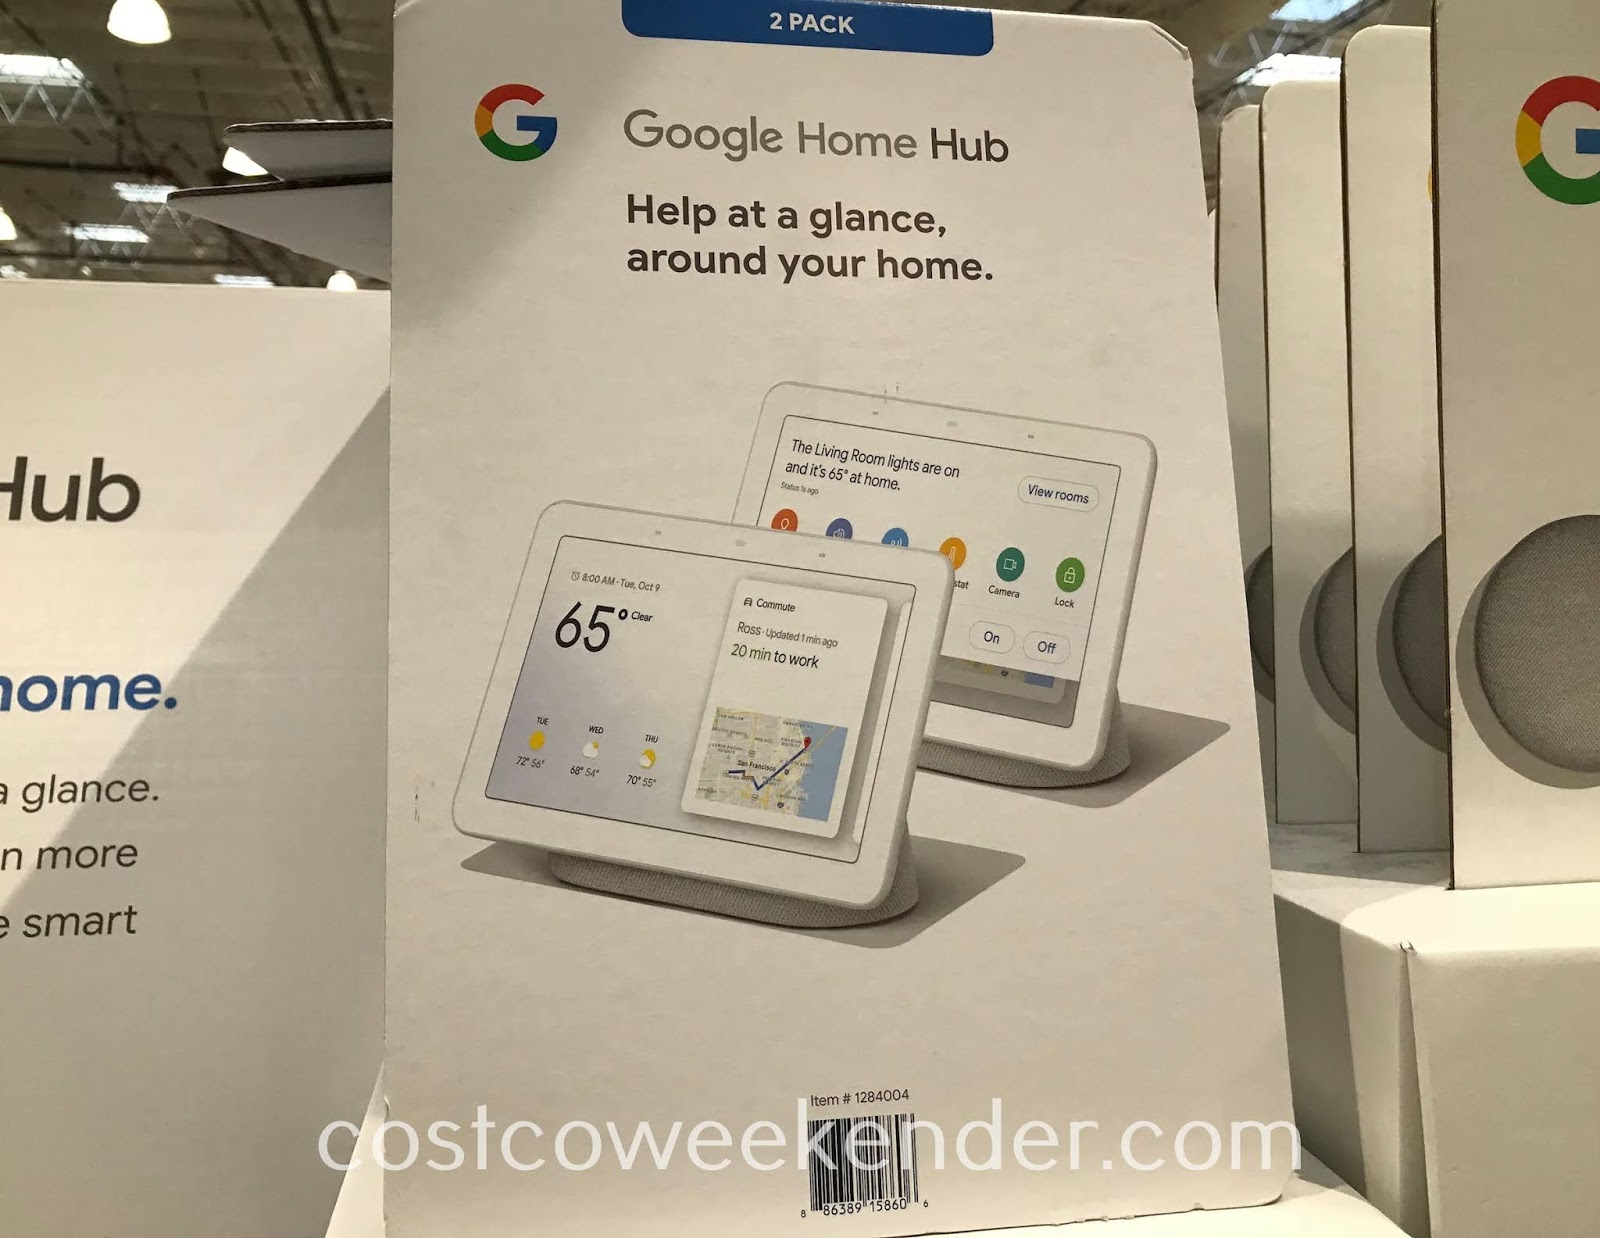 Turn your home into a smart home and get information quickly and with Google Home Hub